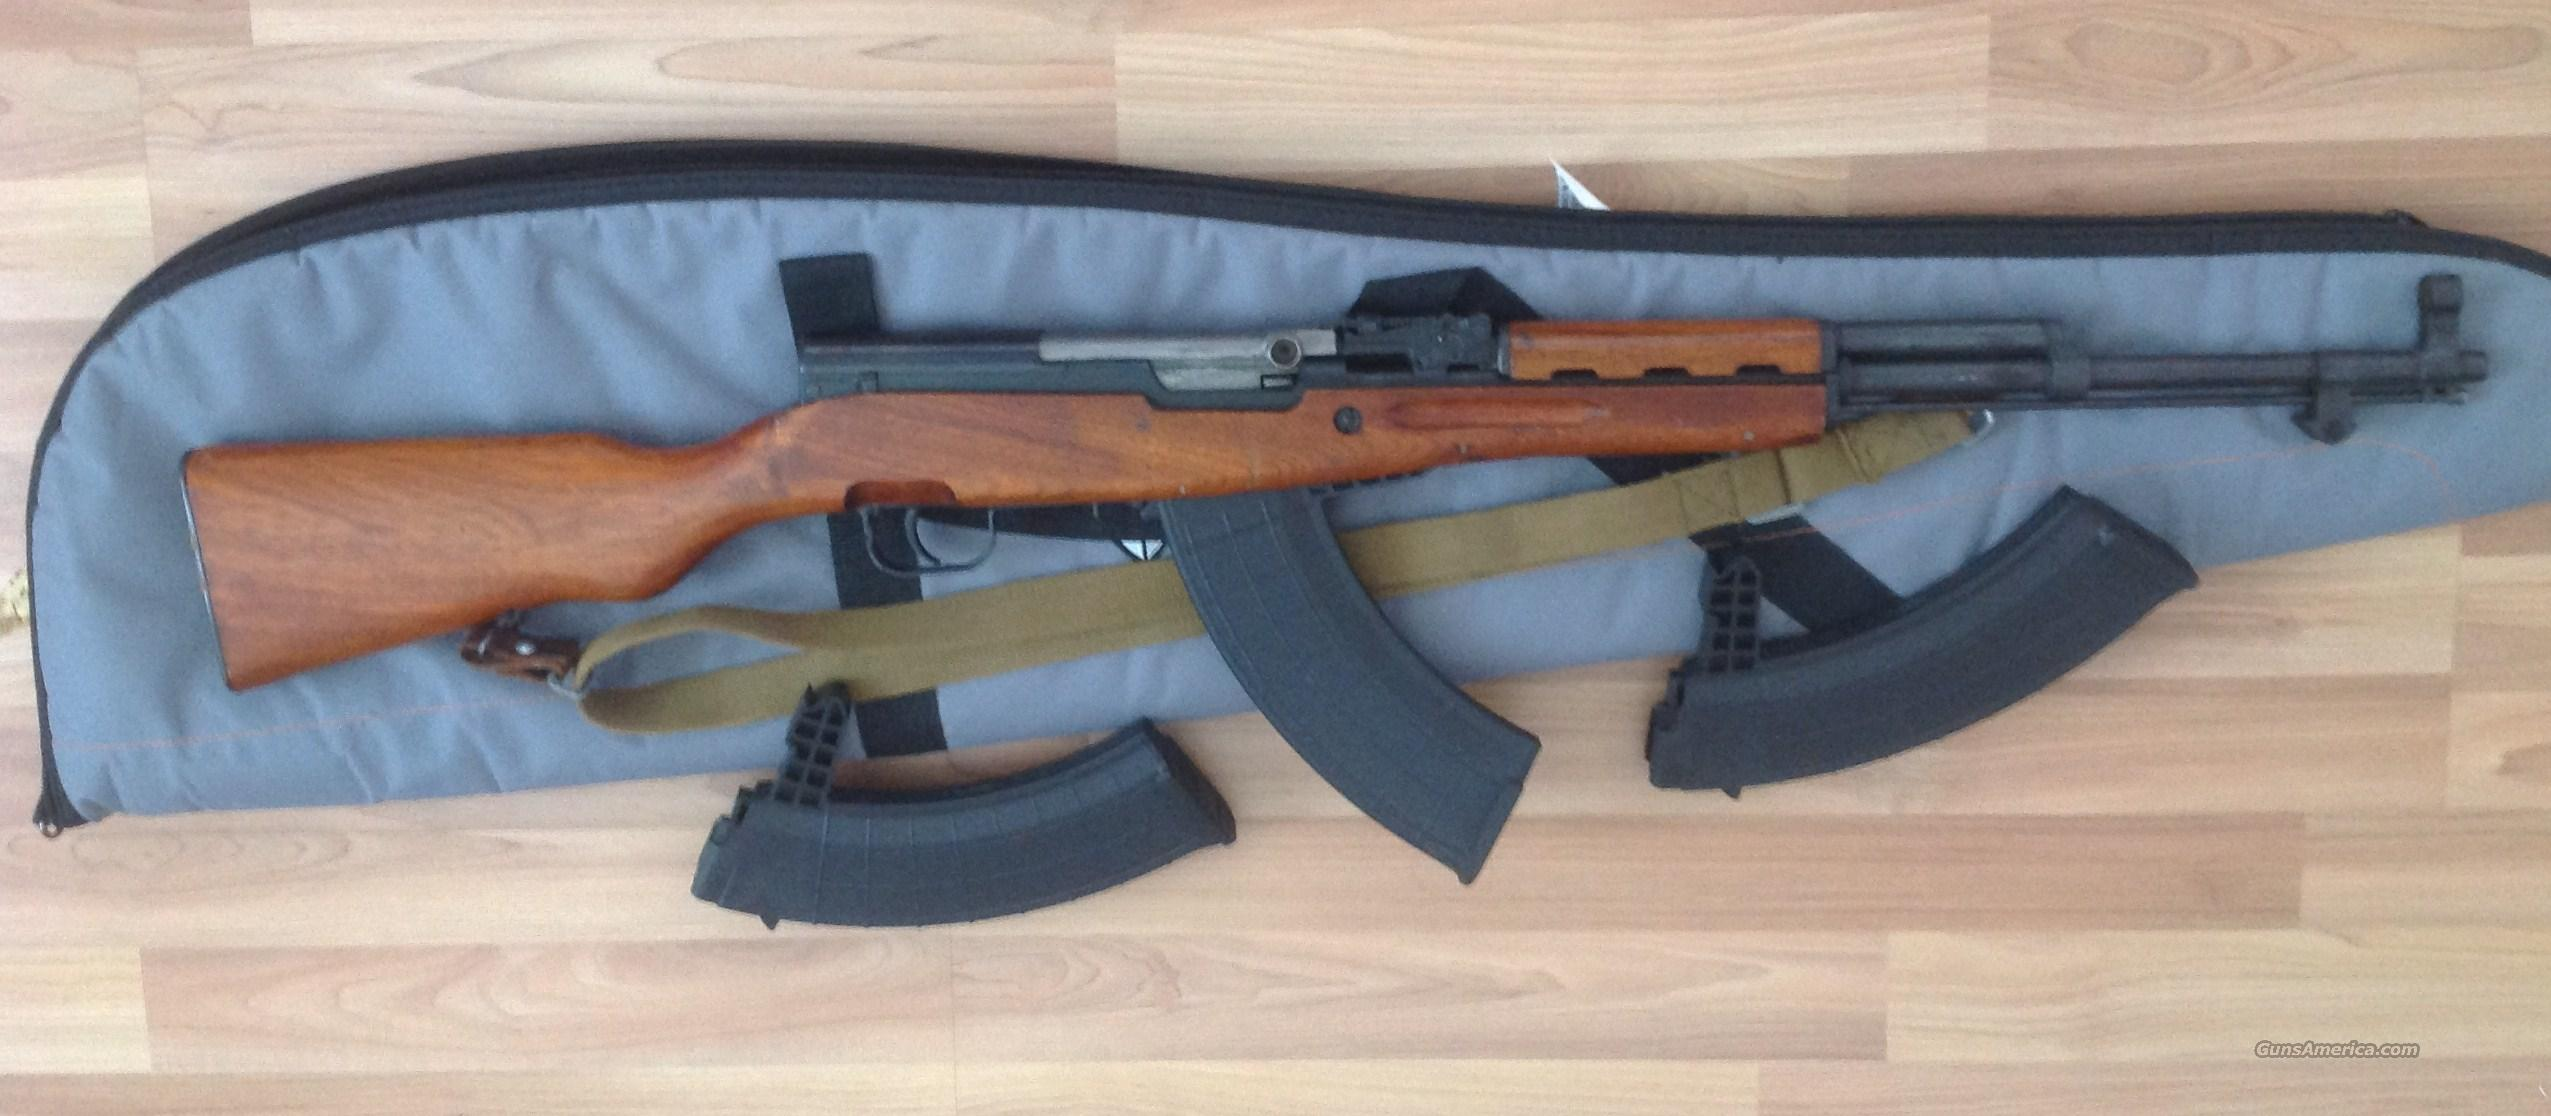 7.62x39mm Chinese SKS with 3 magazines  Guns > Rifles > SKS Rifles